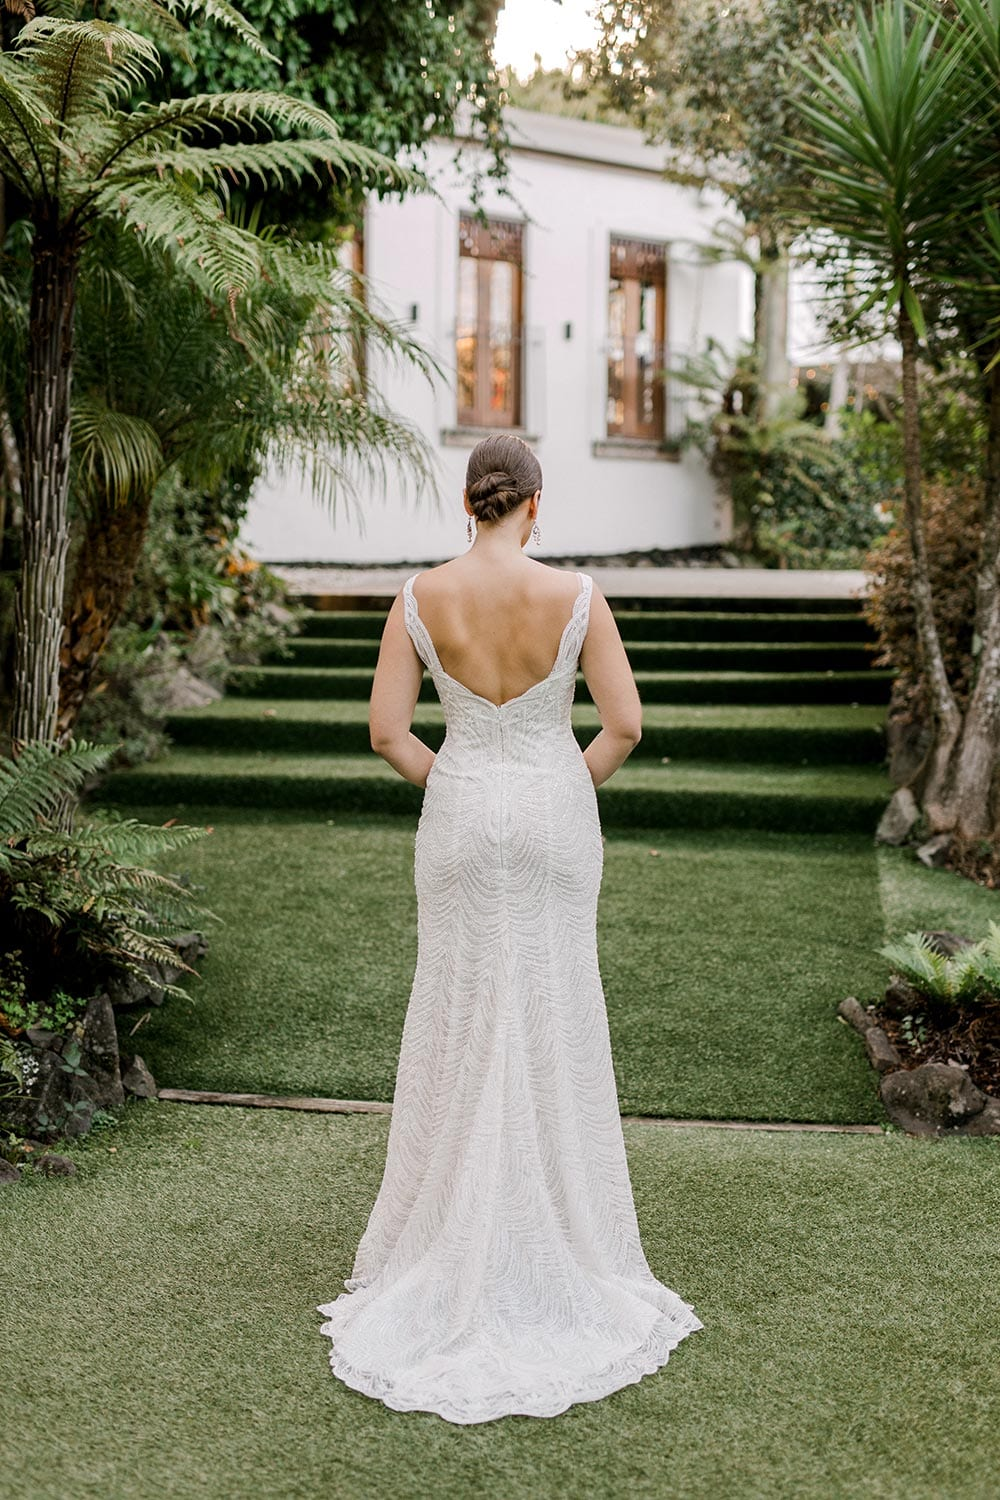 Juliette Wedding Dress from Vinka Design. Flattering stretch fitted lace wedding dress with beautiful ivory rich beading. Structured bodice provides support while remaining effortless to wear. Full length of dress from behind. Photographed at Tui Hills.